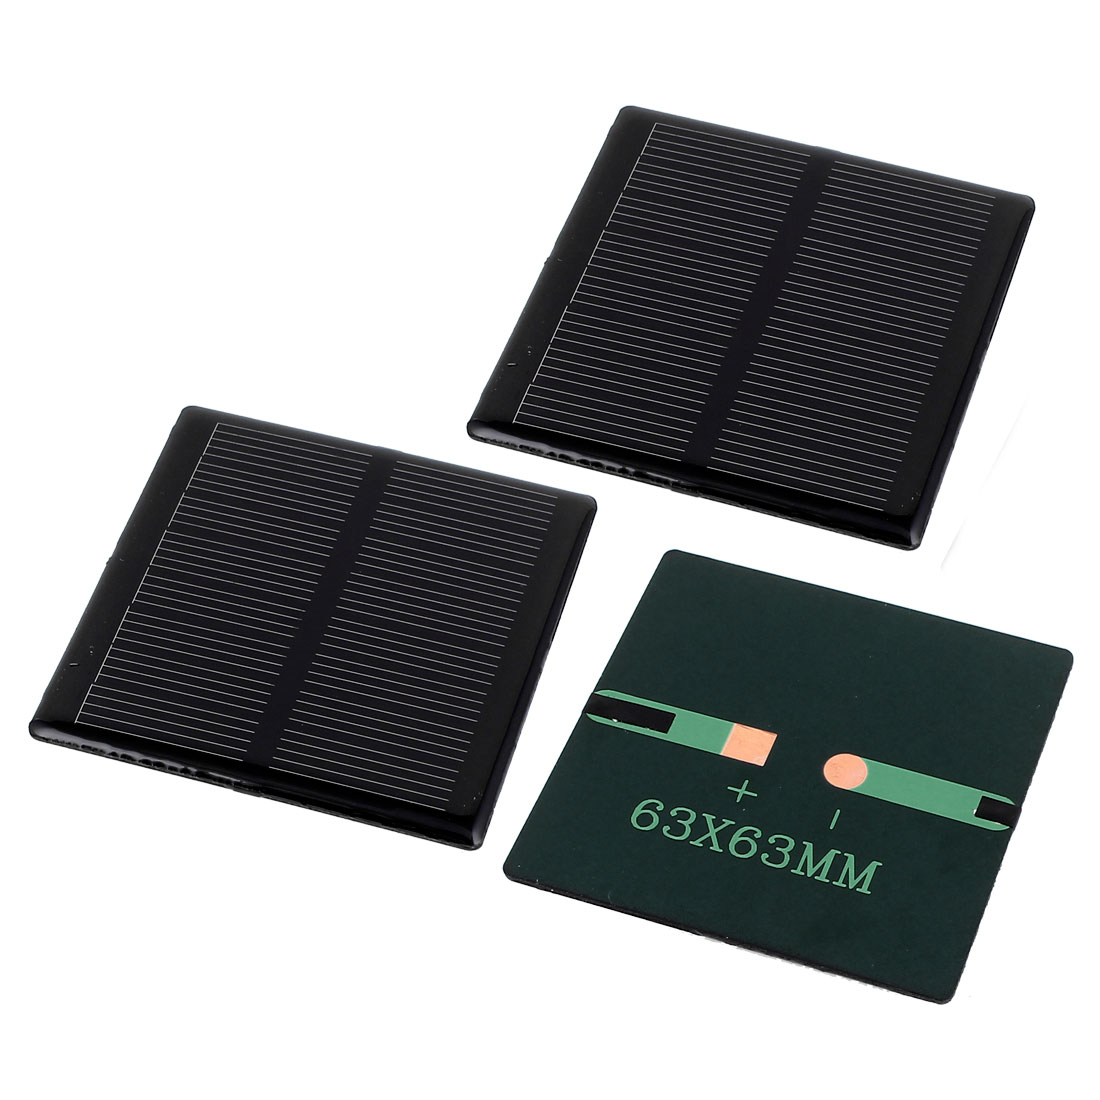 3 Pcs 4V 0.36W DIY Polycrystallinesilicon Solar Panel Power Cell Battery Charger 63mm x 63mm